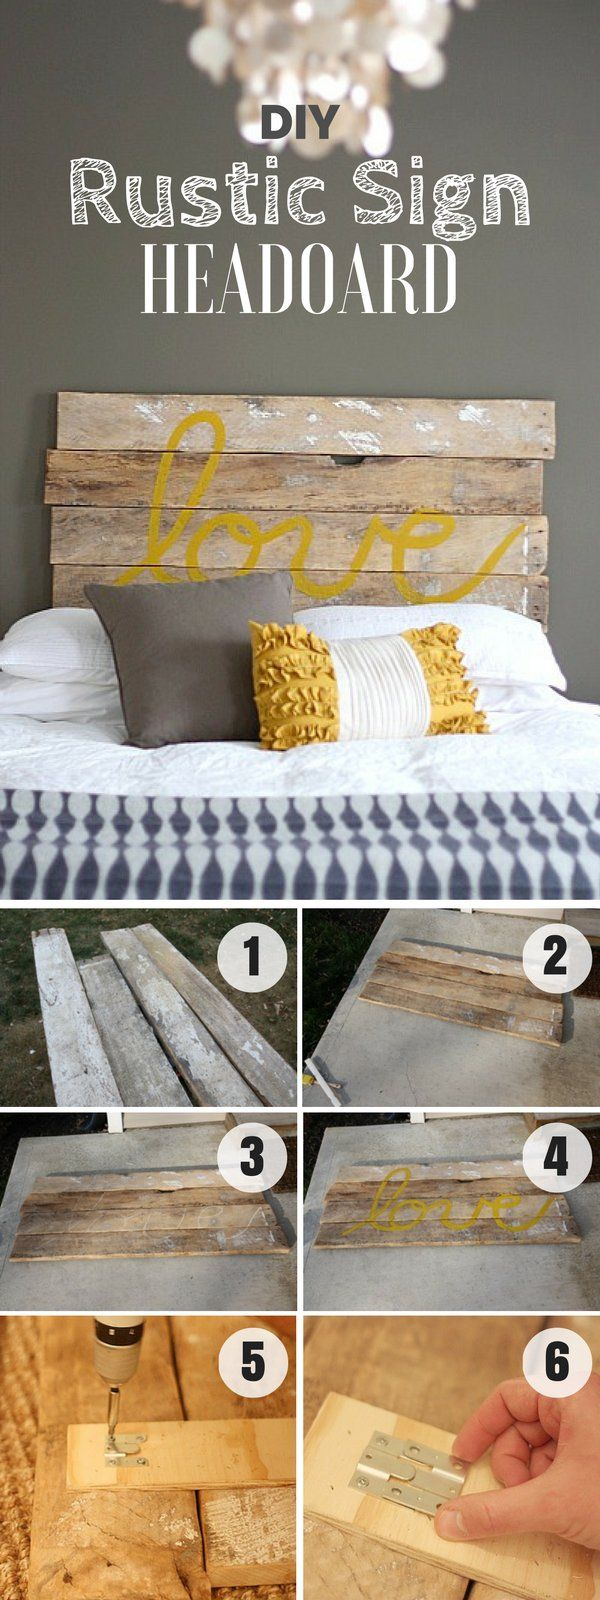 Check out how to build this easy DIY Rustic Sign Headboard @istandarddesign